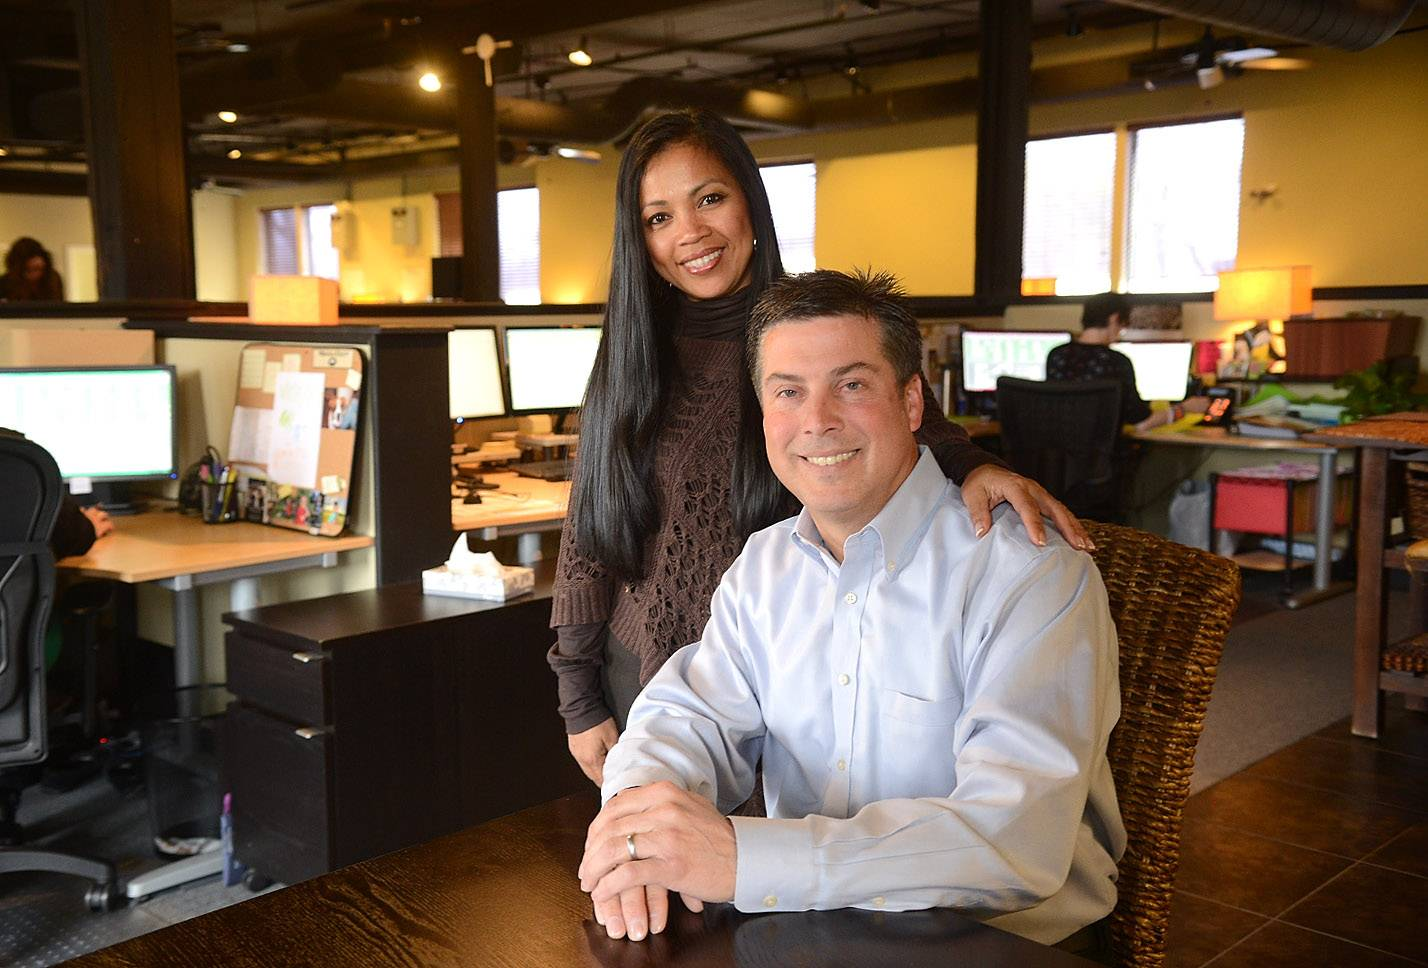 Rowena and Rob Zimmers founded ALE Solutions in St. Charles, the largest temporary housing placement company in the nation.